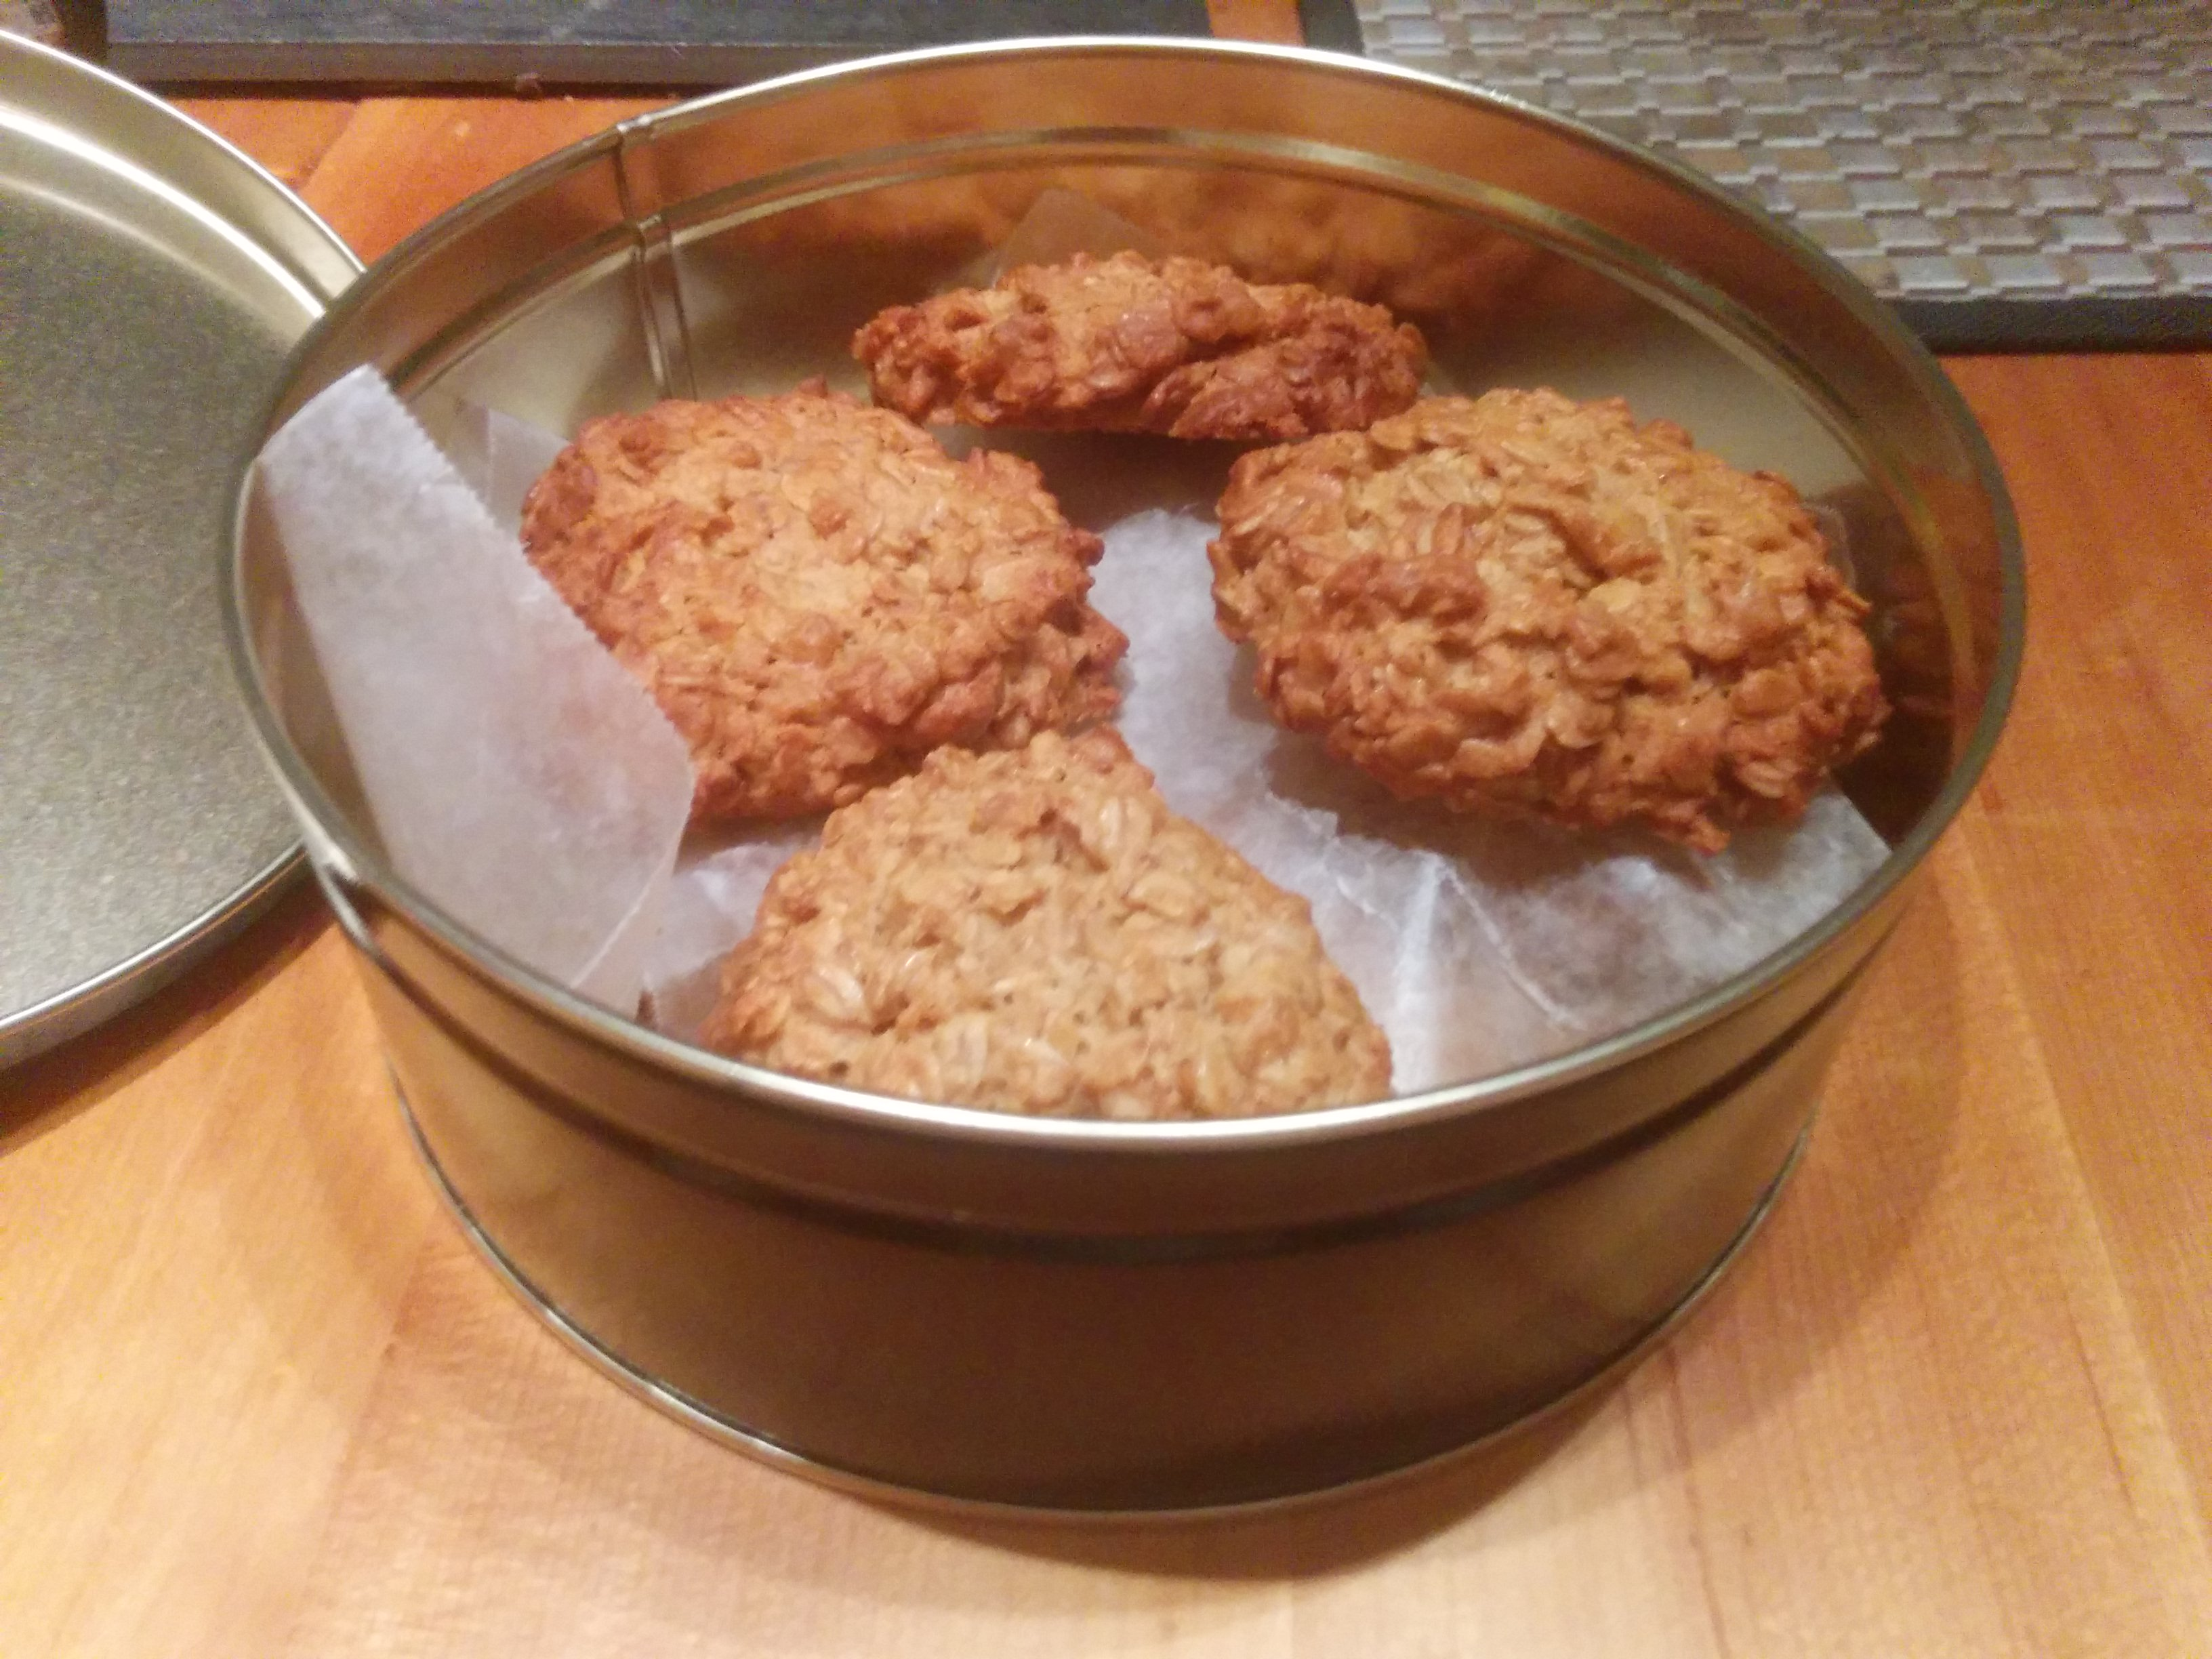 Homemade cookies in a cookie tin